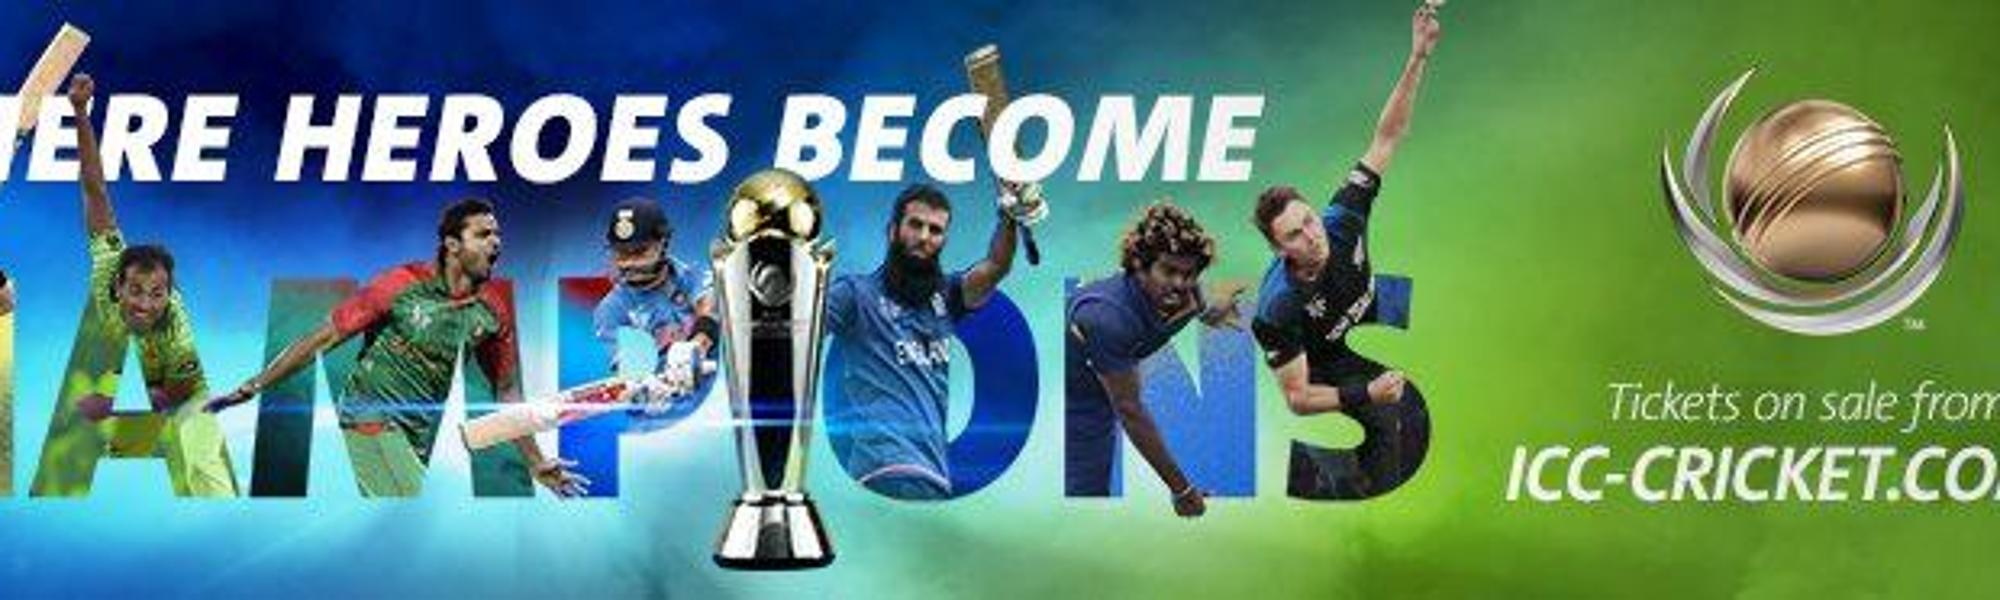 Icc Champions Trophy 2017 Ticket Ballot Opens